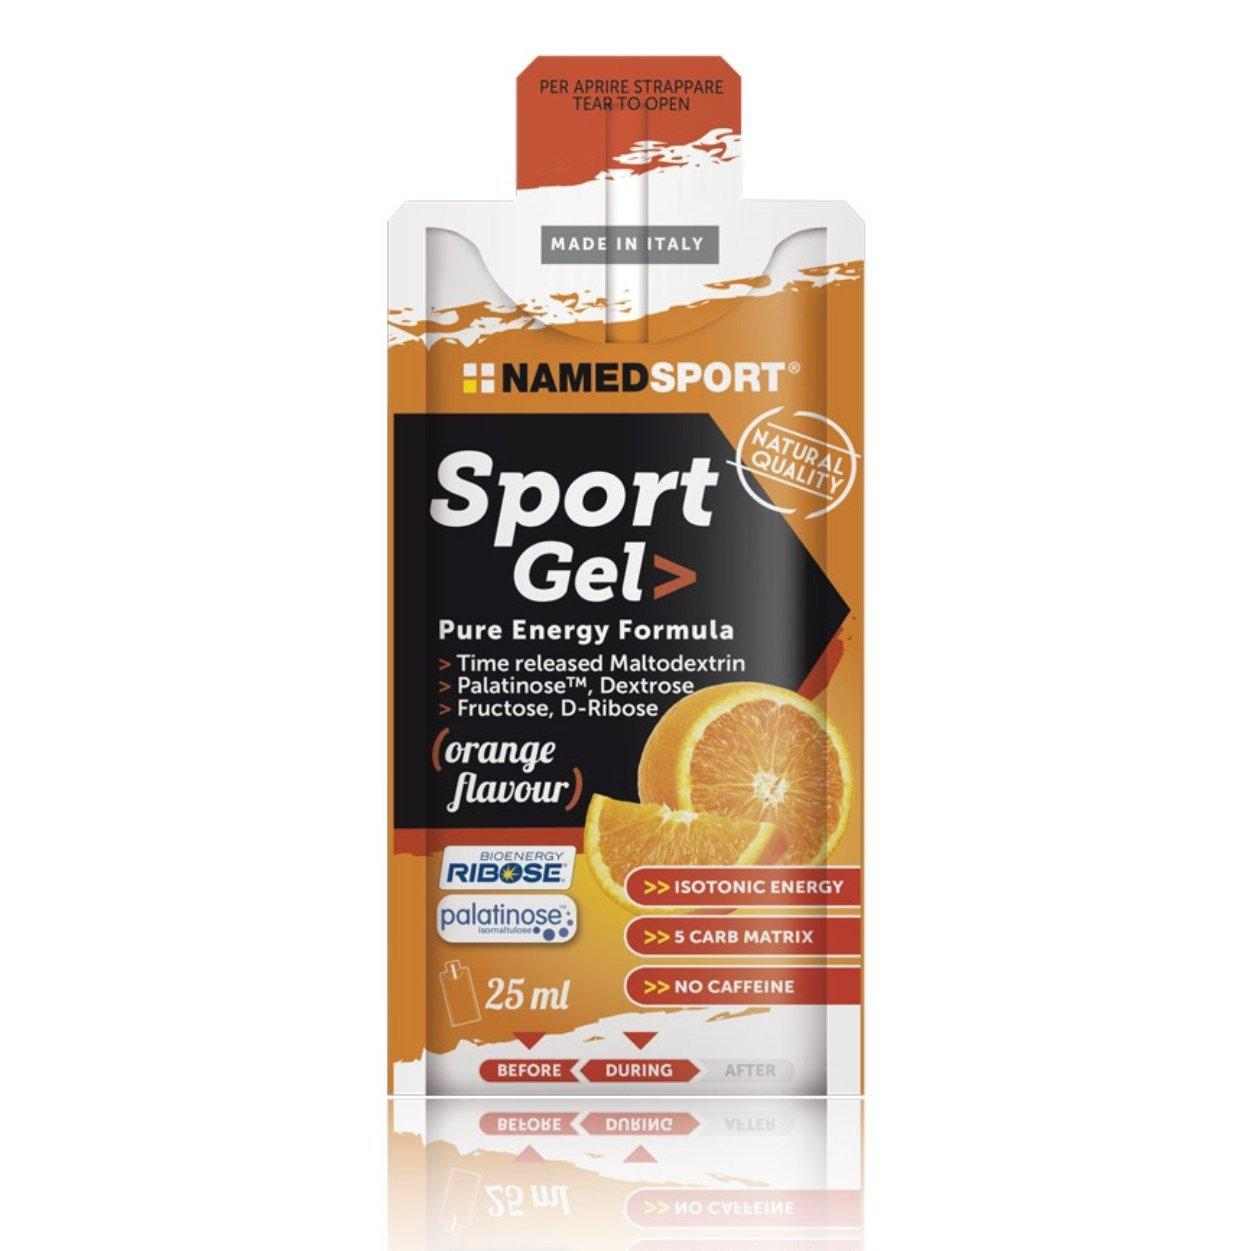 Sport Gel Pure Energy Formula 25ml. Named Sport